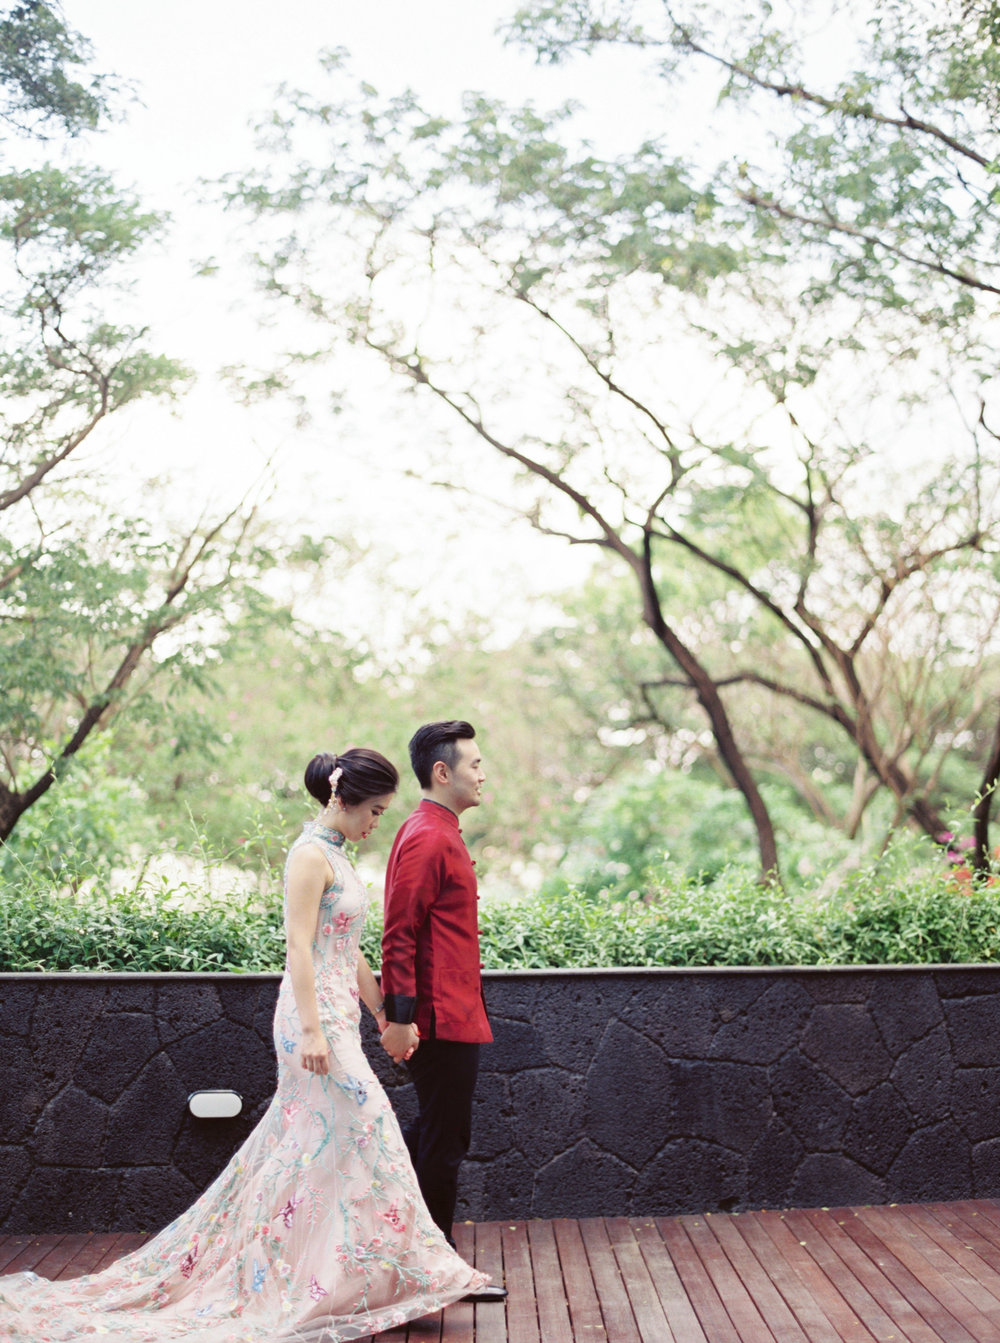 Gerry-Stephanie-Sangjit-Studio June-Film Photography & Styling-Jakarta-194.jpg